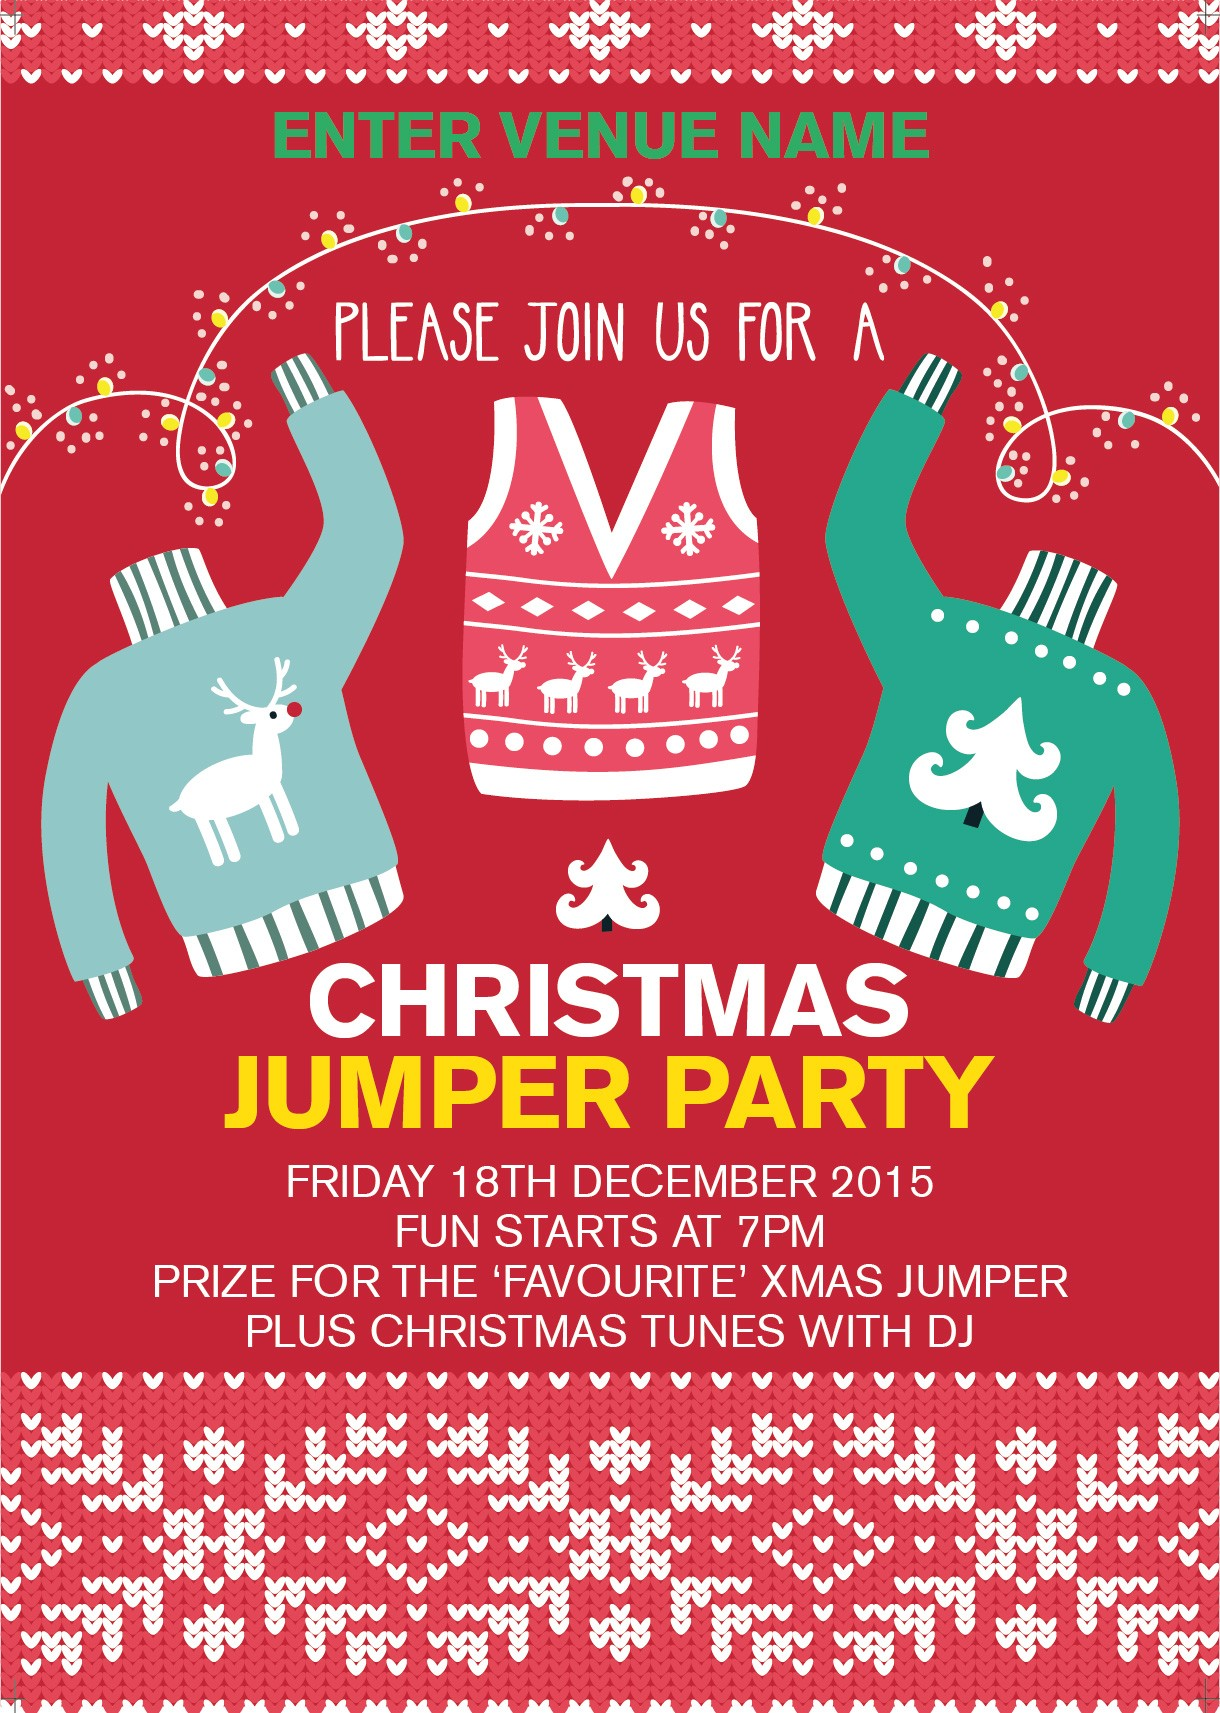 Christmas Jumper Party Poster (A3)